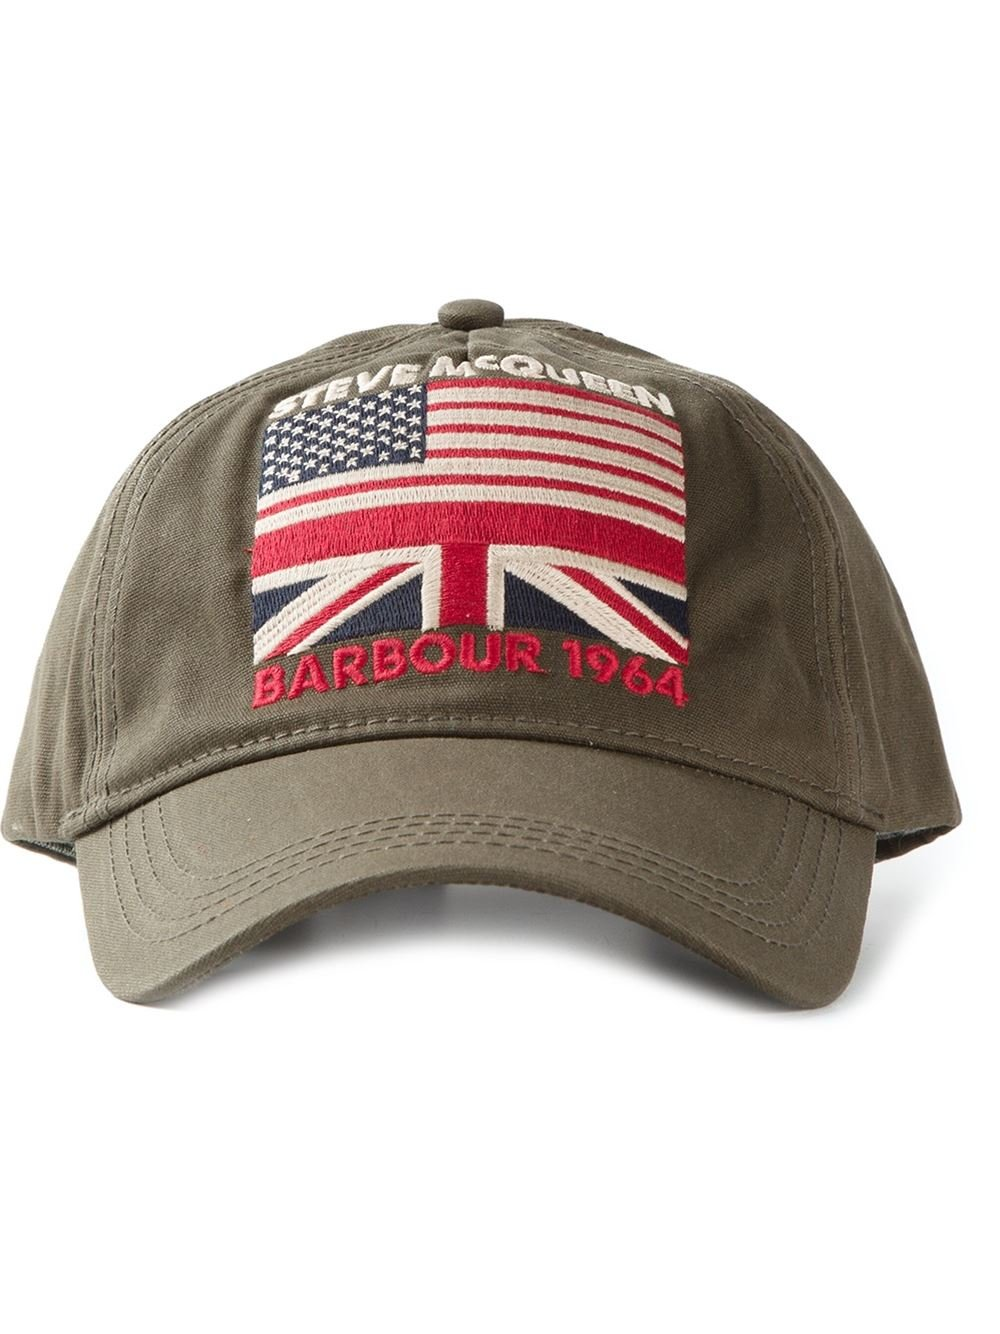 Lyst - Barbour Steve Mcqueen Usa Flag Cap in Green for Men f17153a3405